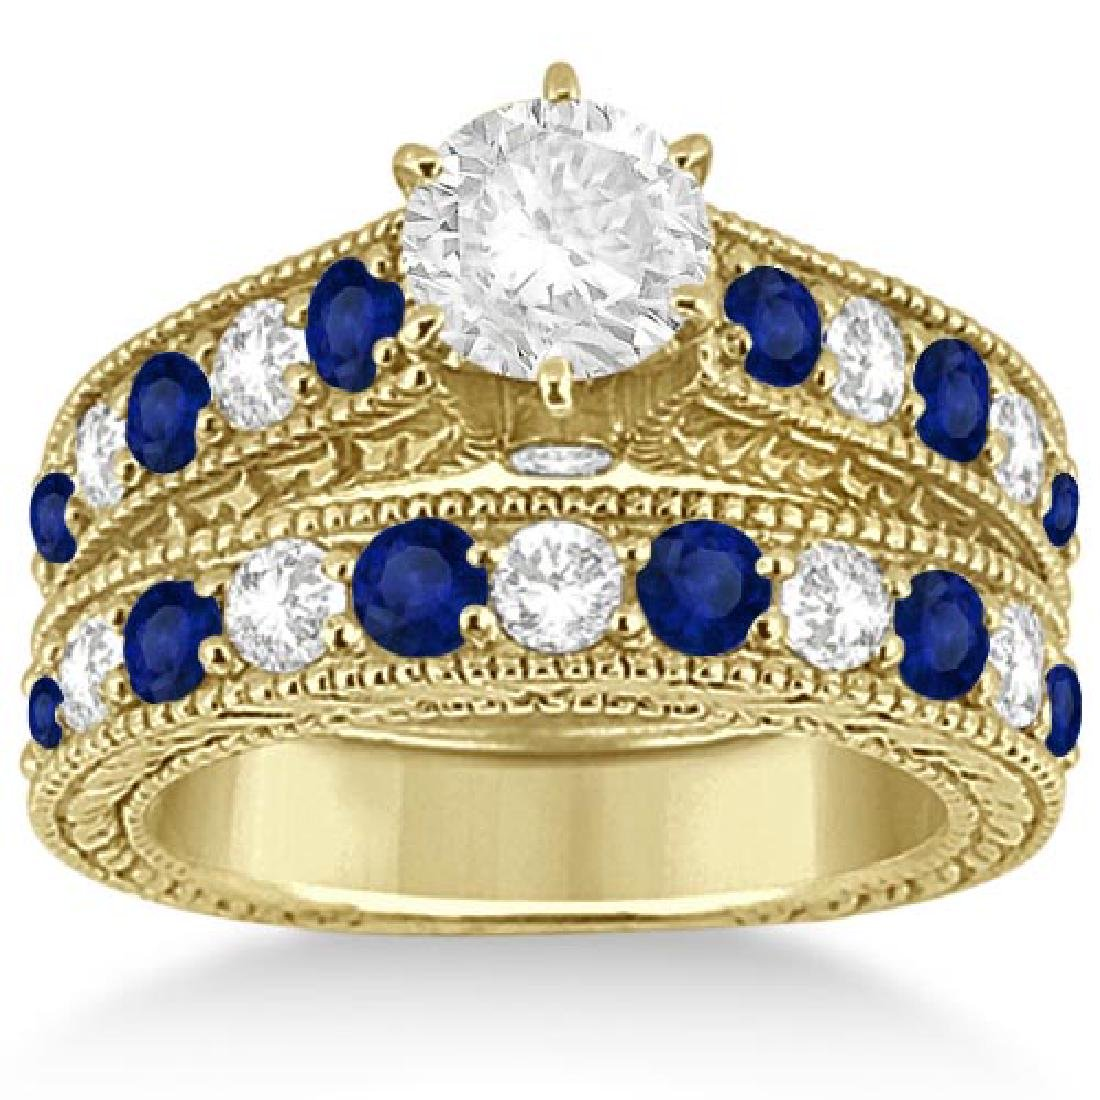 Antique Diamond and Sapphire Bridal Ring Set 14k Yellow